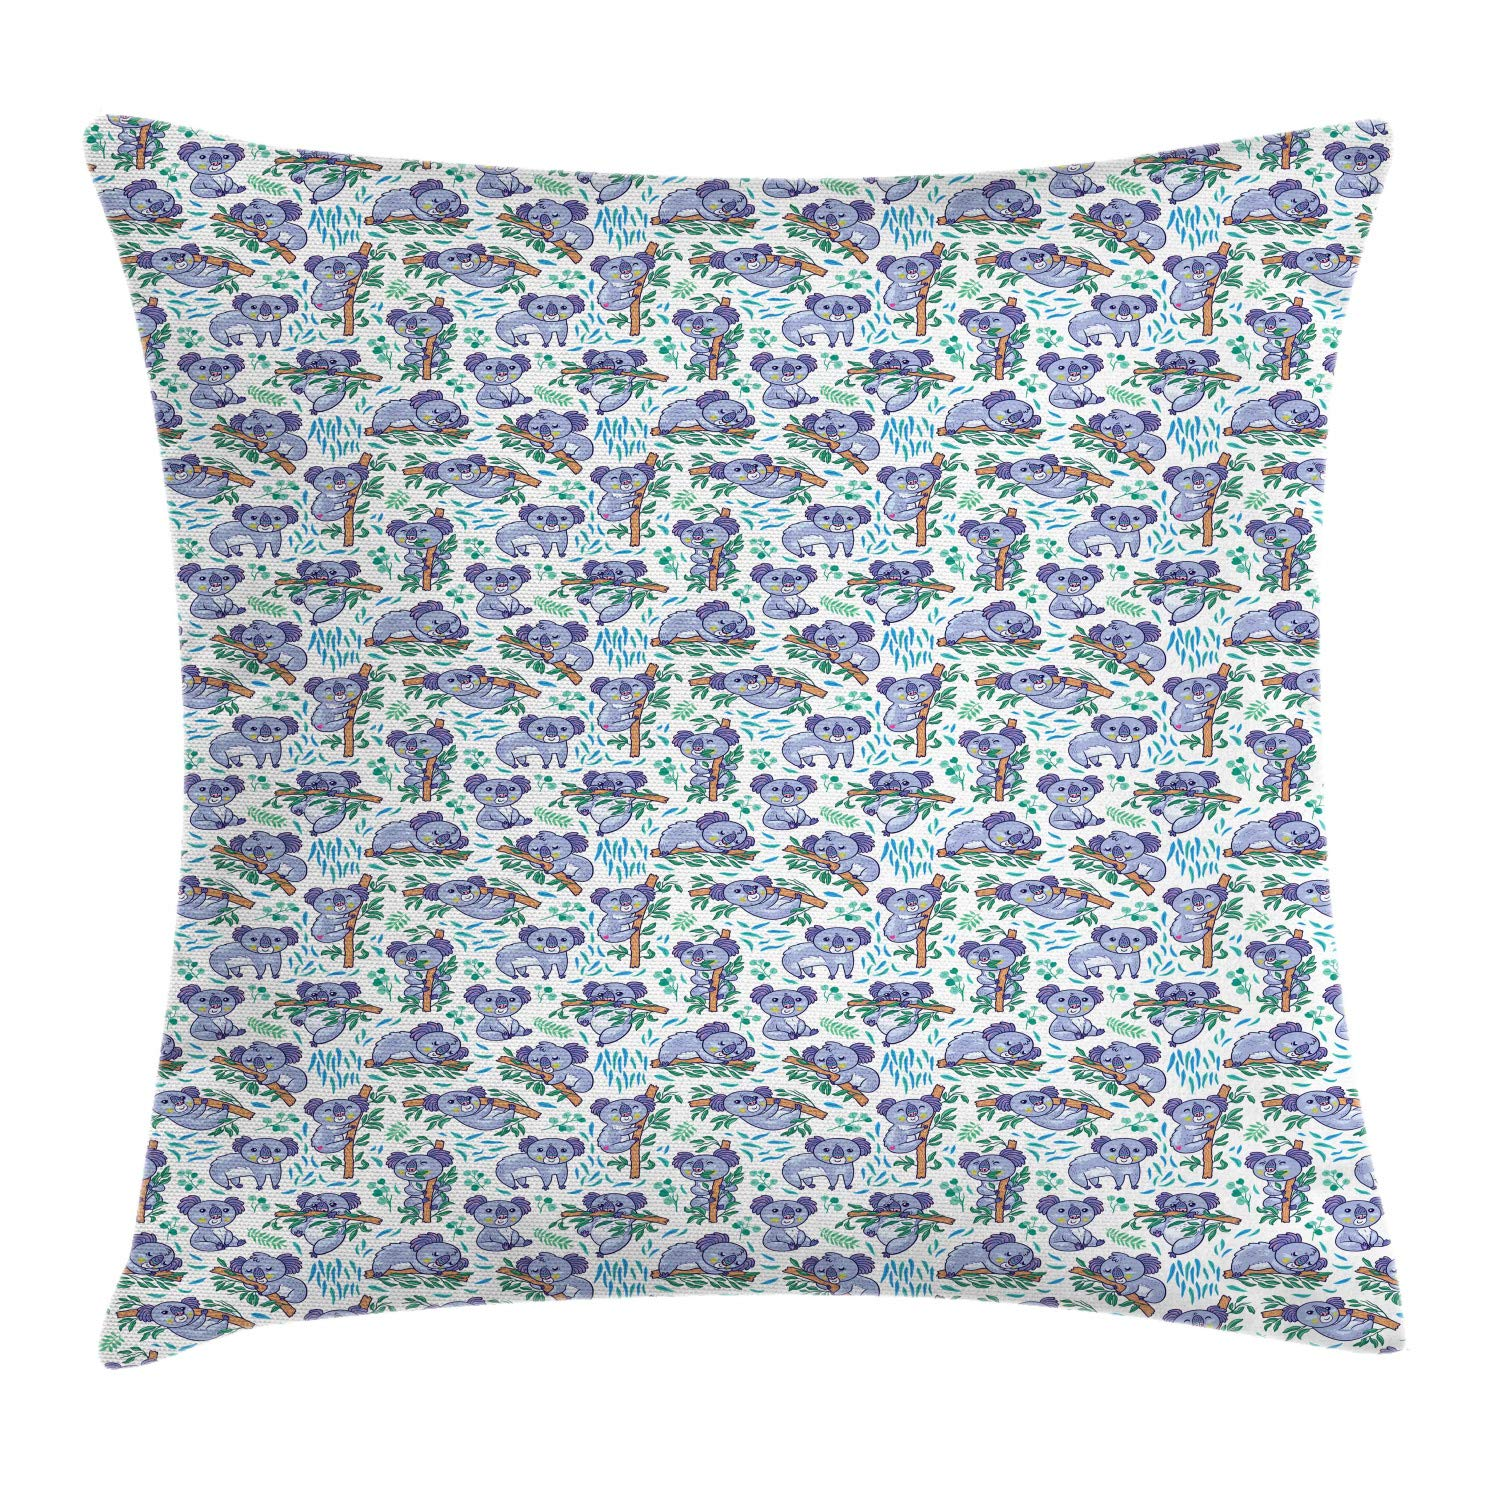 Lunarable Nursery Throw Pillow Cushion Cover, Cartoon Pattern of Baby Koala Cuddling The Eucalyptus Trees, Decorative Square Accent Pillow Case, 28'' X 28'', Jade Green Lavender Blue by Lunarable